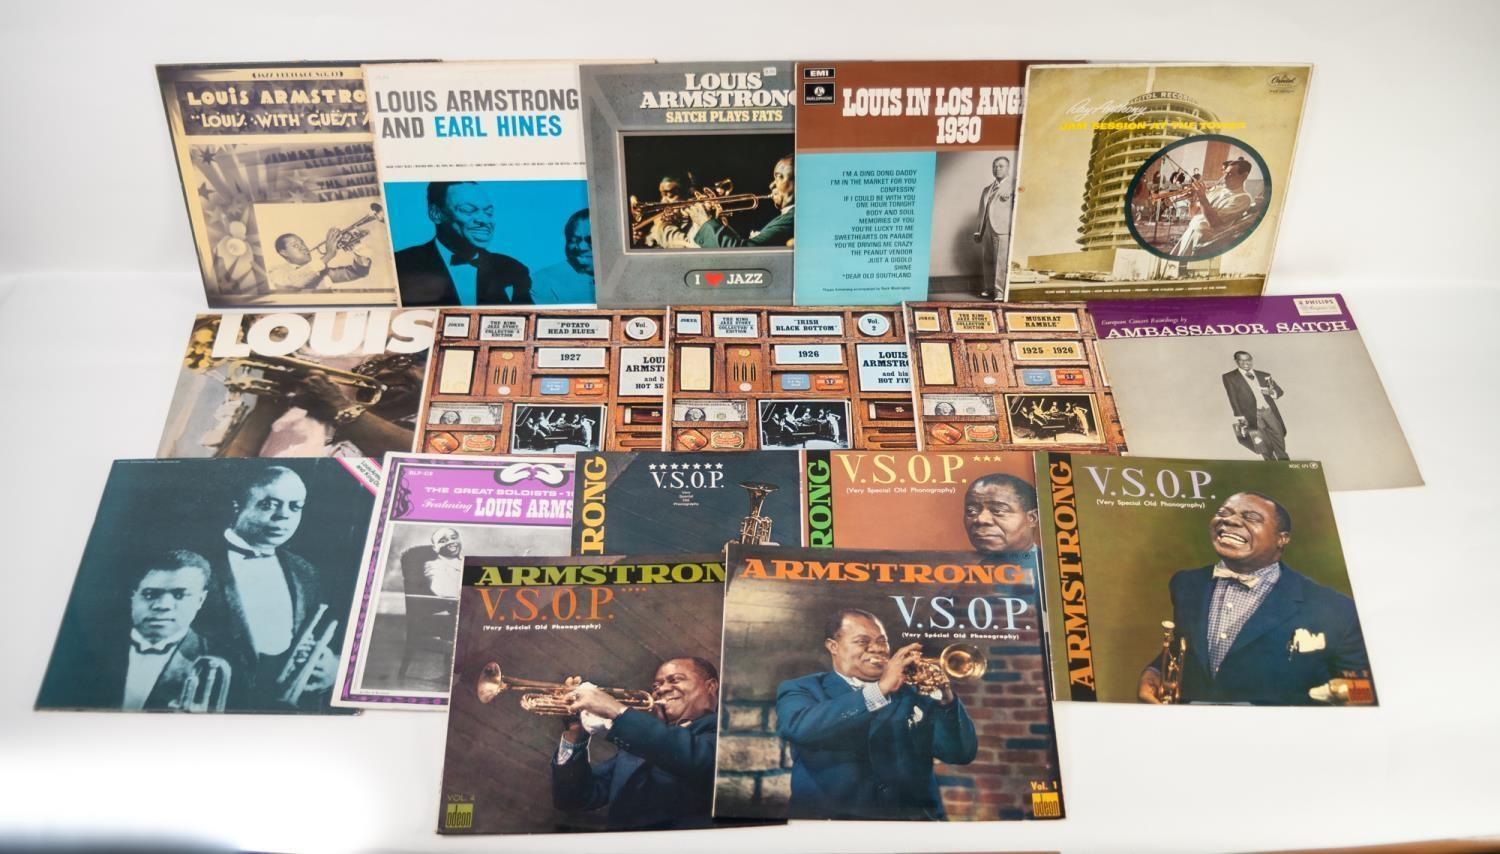 JAZZ, VINYL RECORDS- A IS FOR LOUIS ARMSTRONG (Satchmo) and Eddie Condon-LIVE AT NEWPORT, Philips ( - Image 3 of 3